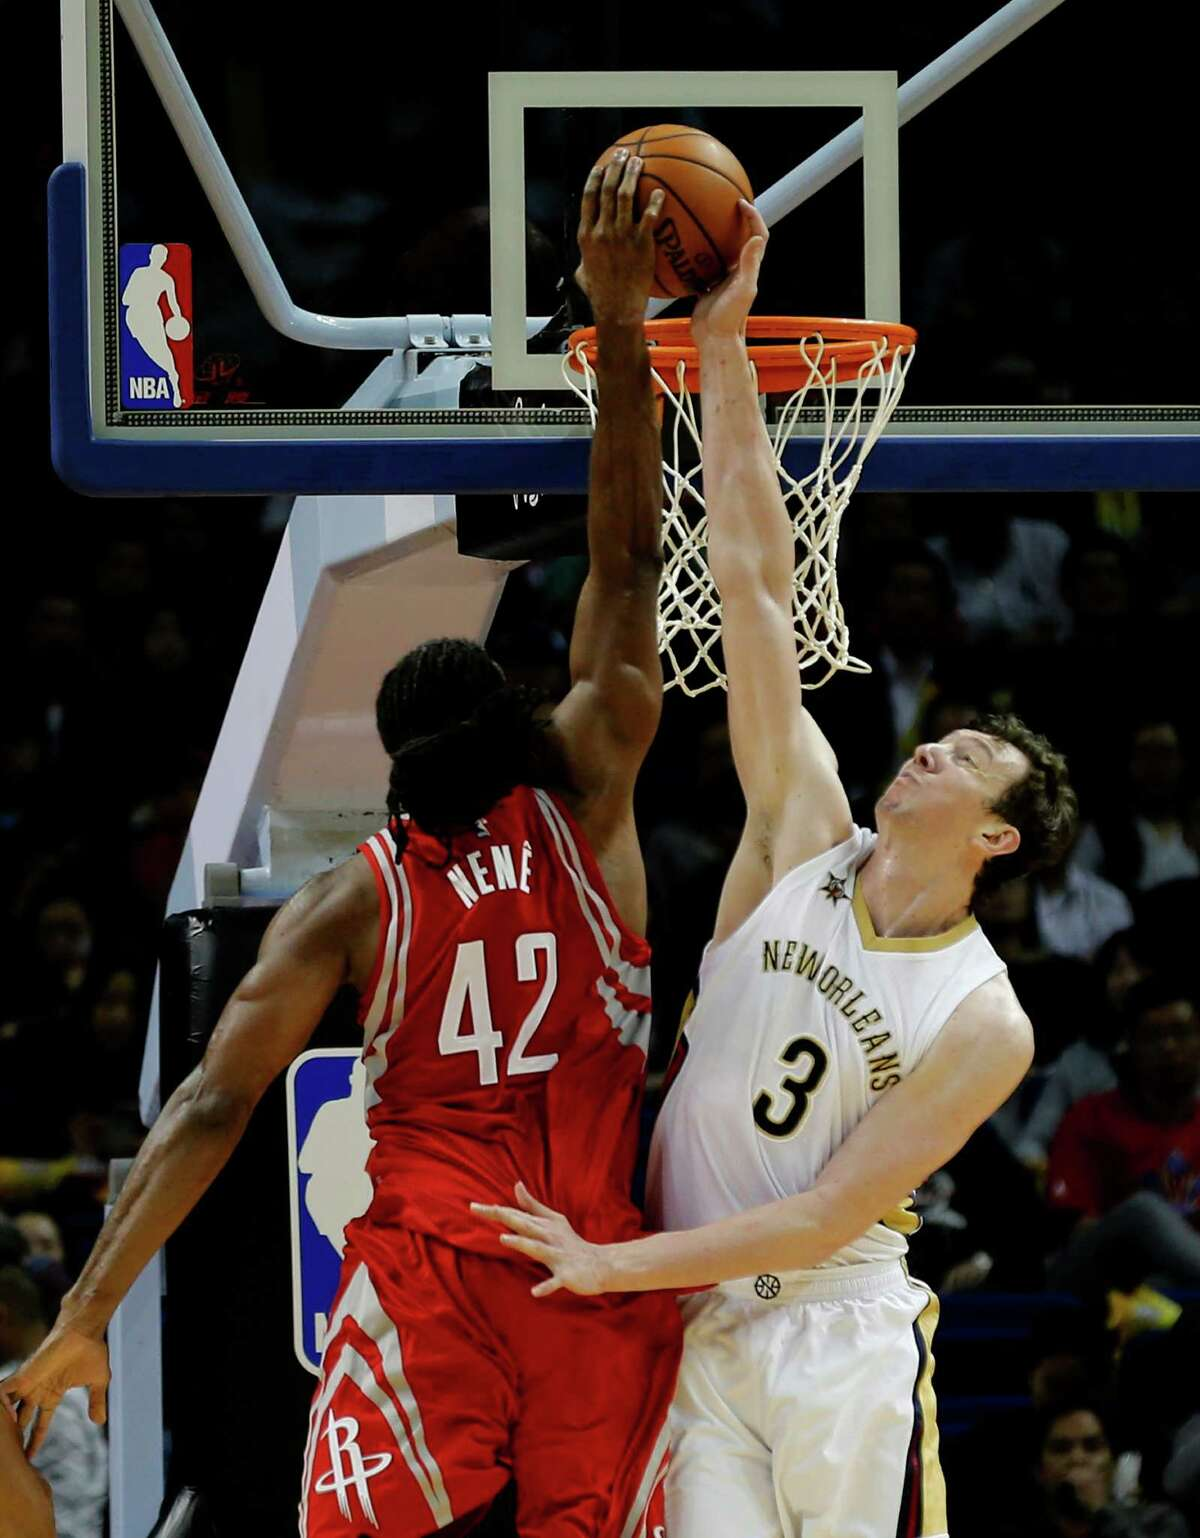 Houston Rockets Nene Hilario, left, has his shot blocked by New Orleans Pelicans Omer Asik during their preseason NBA game in Shanghai, China, Sunday, October, 9, 2016. (AP Photo)